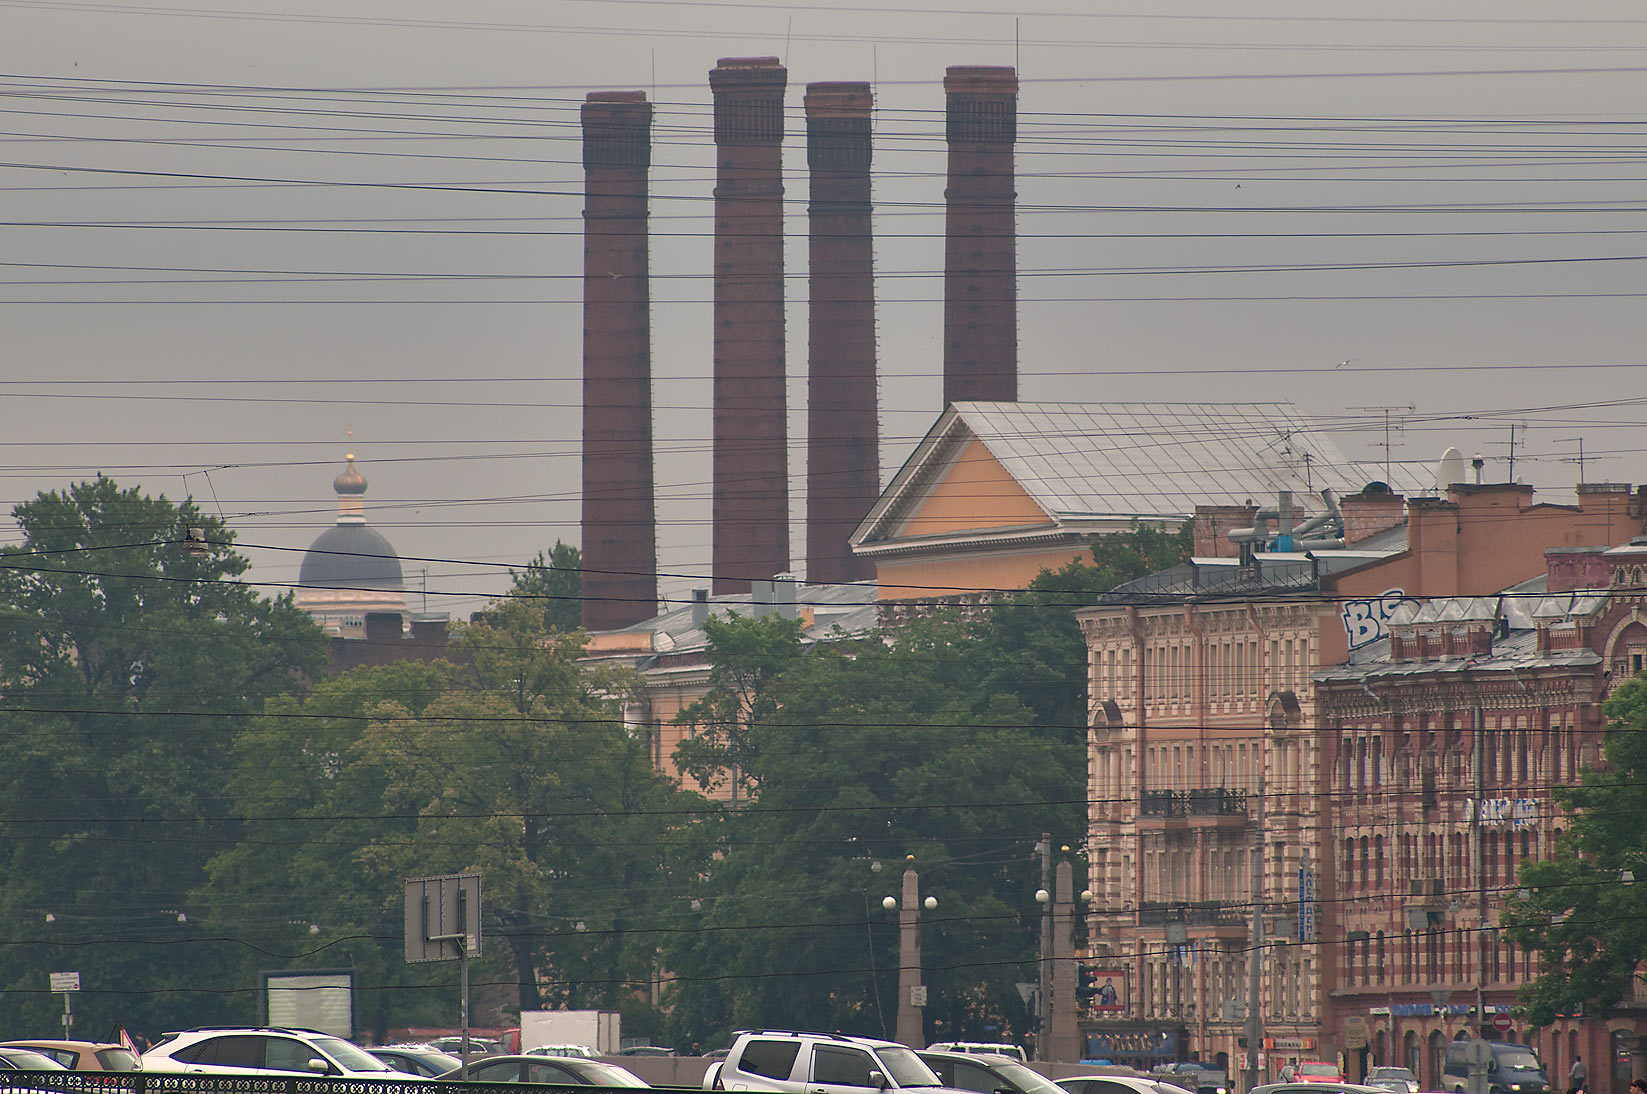 Smokestacks near Griboedova Canal. St.Petersburg, Russia